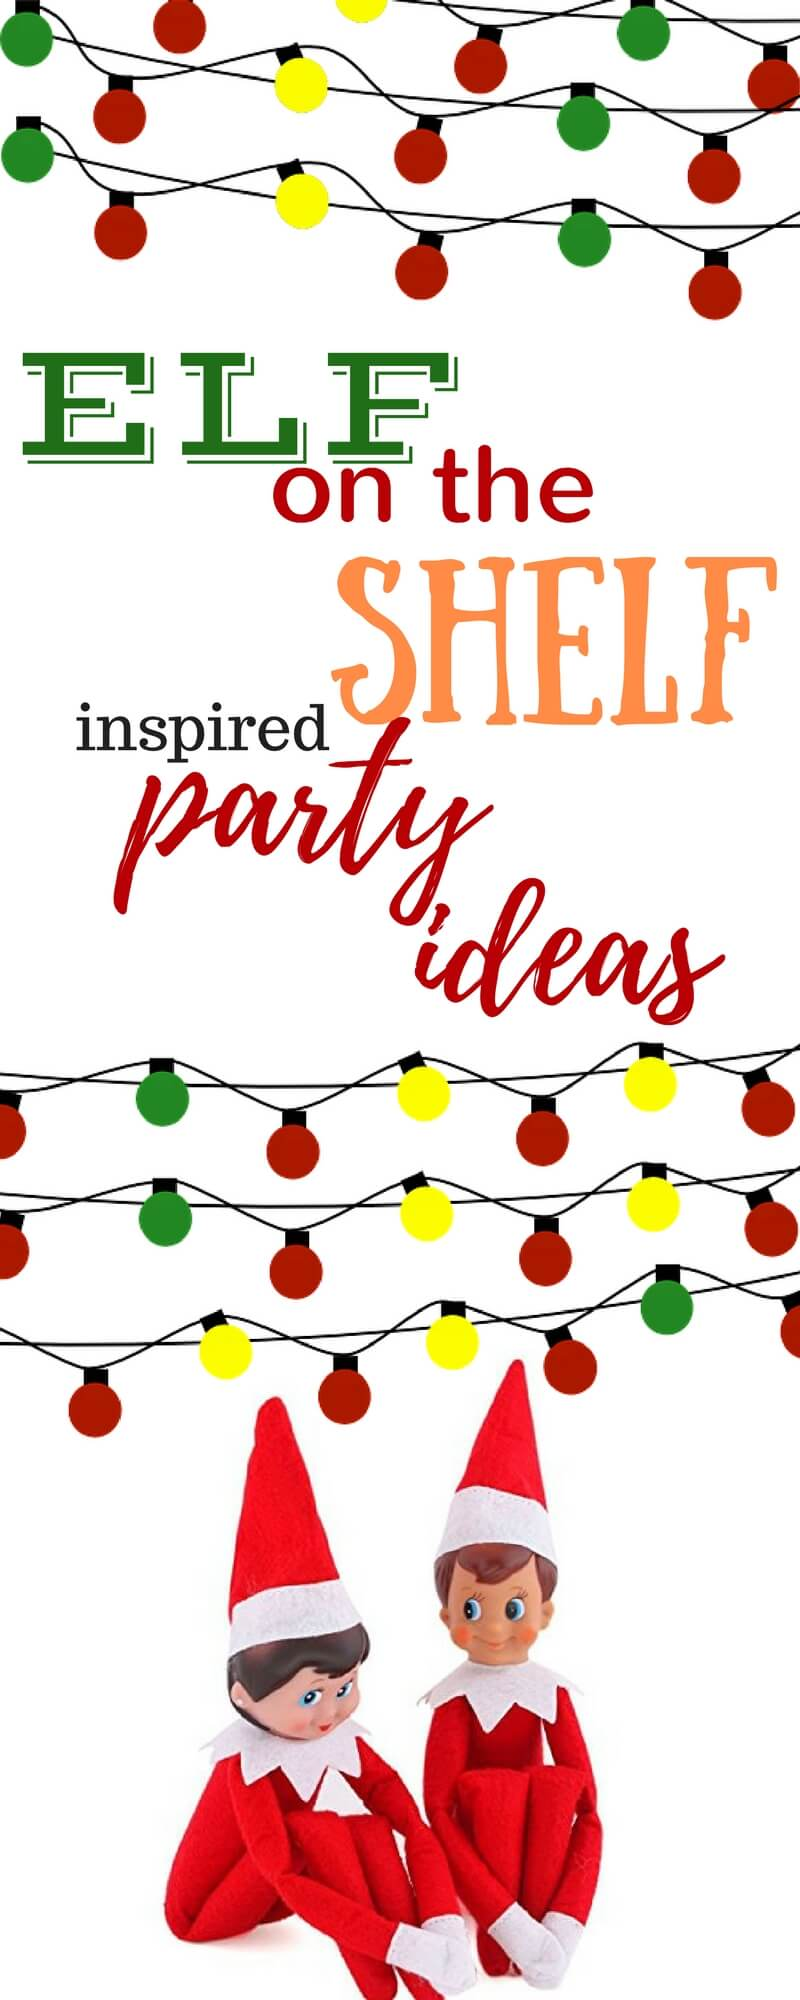 The Elf On The Shelf® Birthday Ideas: Free DIY Birthday Printables & Decorations Find this Pin and more on Elf on the Shelf birthday ideas! by Wellie Wishers. Craft your own unique, DIY birthday party with The Elf On The Shelf® Birthday Collection.